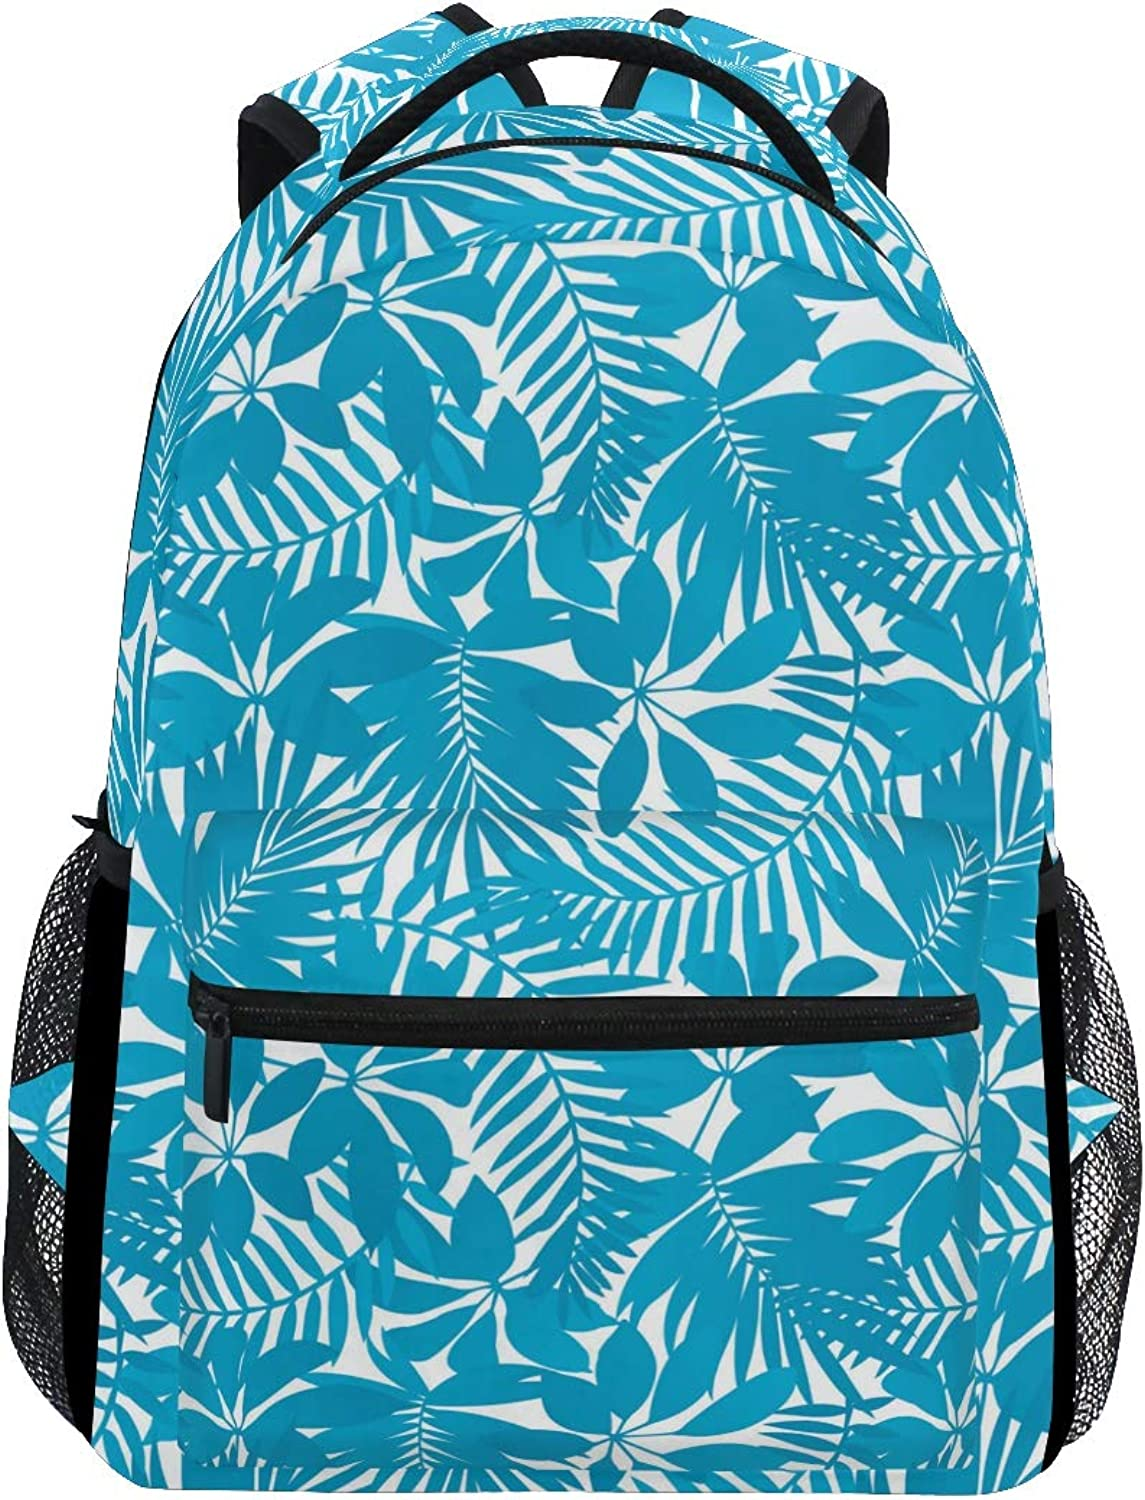 bluee Palm Leaf Pattern Large Backpack Travel Outdoor Sports Laptop Backpack for Women & Men College School Water Resistant